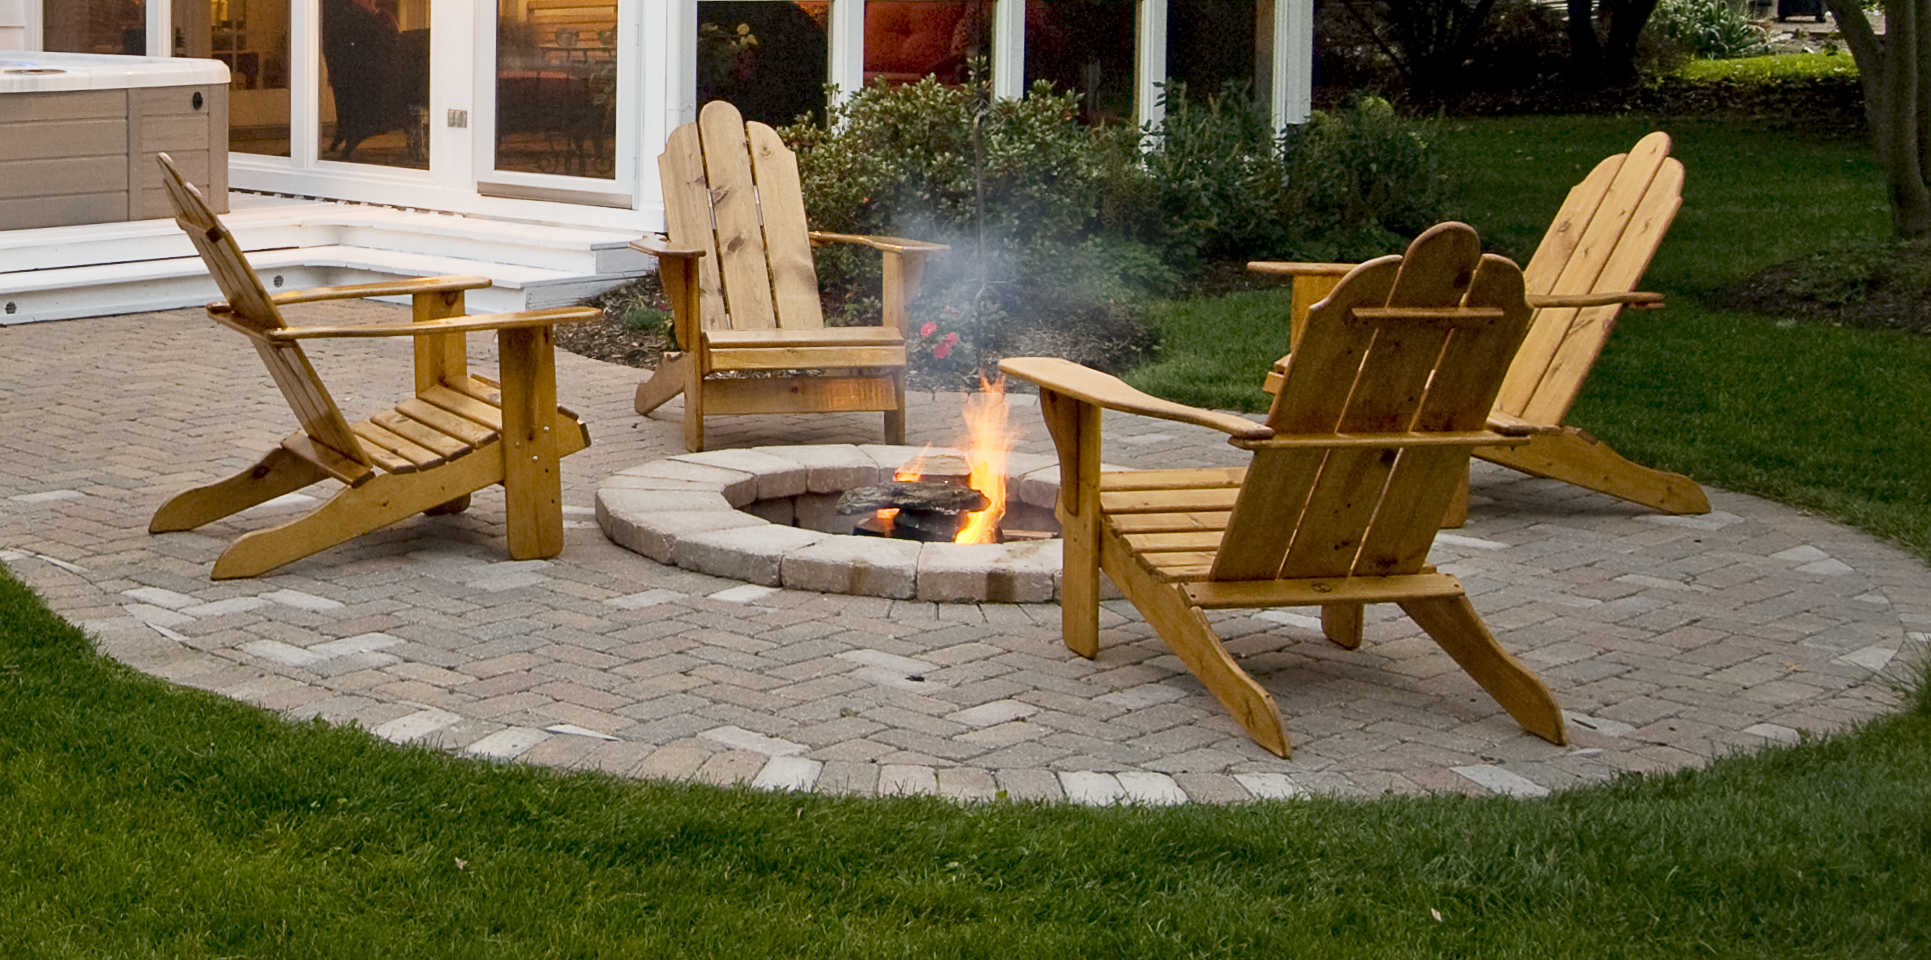 5 simple steps to build a backyard stone fire pit